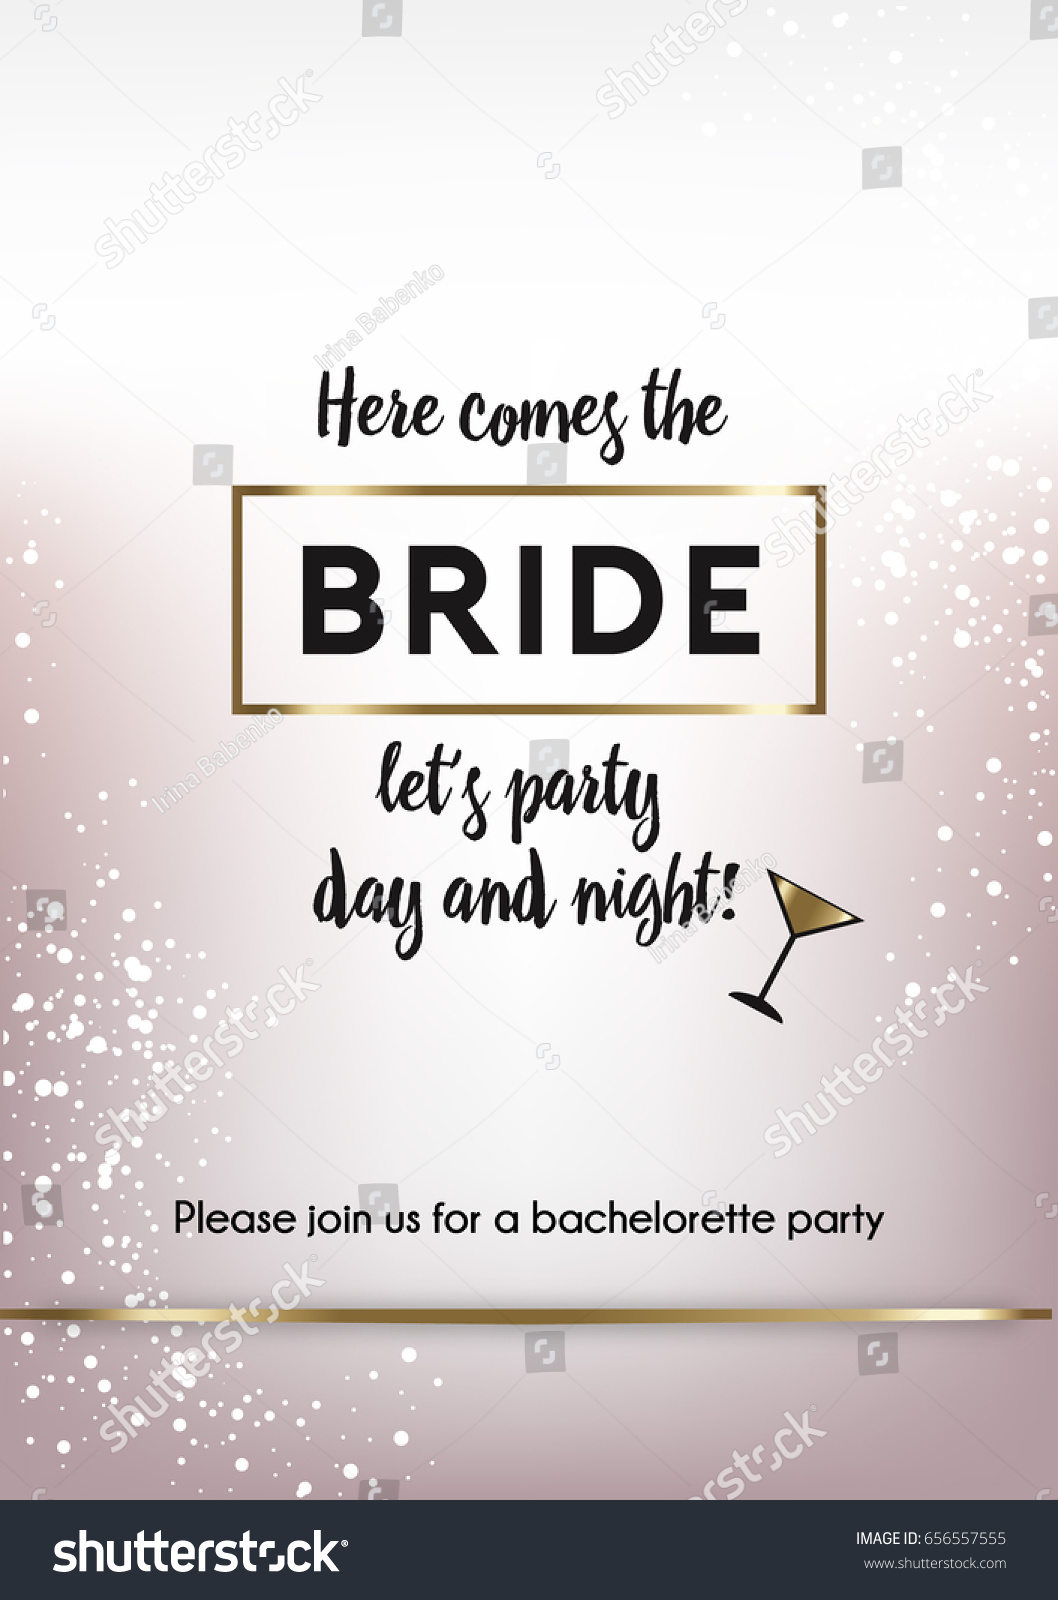 Western Bachelorette Party Invitations Image collections - Party ...